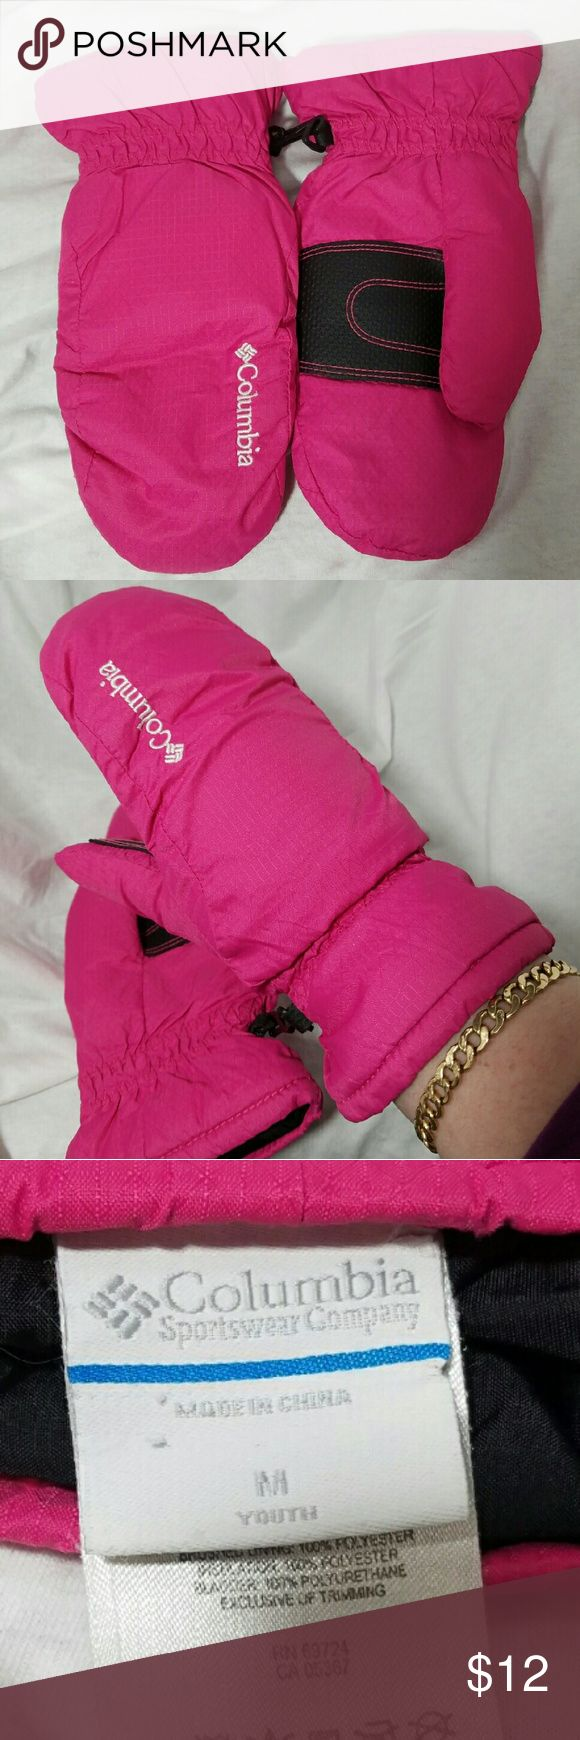 "COLUMBIA Youth Sz MED Hot Pink Mittens Brand: Columbia  Item: *Deep Color yet not Dark Hot Pink Mittens *They Are Youth Size Medium - I am an adult with Small Hands and they Fit Me Perfectly. *I Certainly Can't Promise They Would Fit All Adult Women but I Think Girls in Their Young Teens Wouls Have No Problem. *They Measure Across the Palm 4.25"" and 9"" for Total Length *There Was a Seam on the Right Glove Near Where the Thumb Stitching Was Coming Undone - I Sewed it All back, Same Color. EUC…"